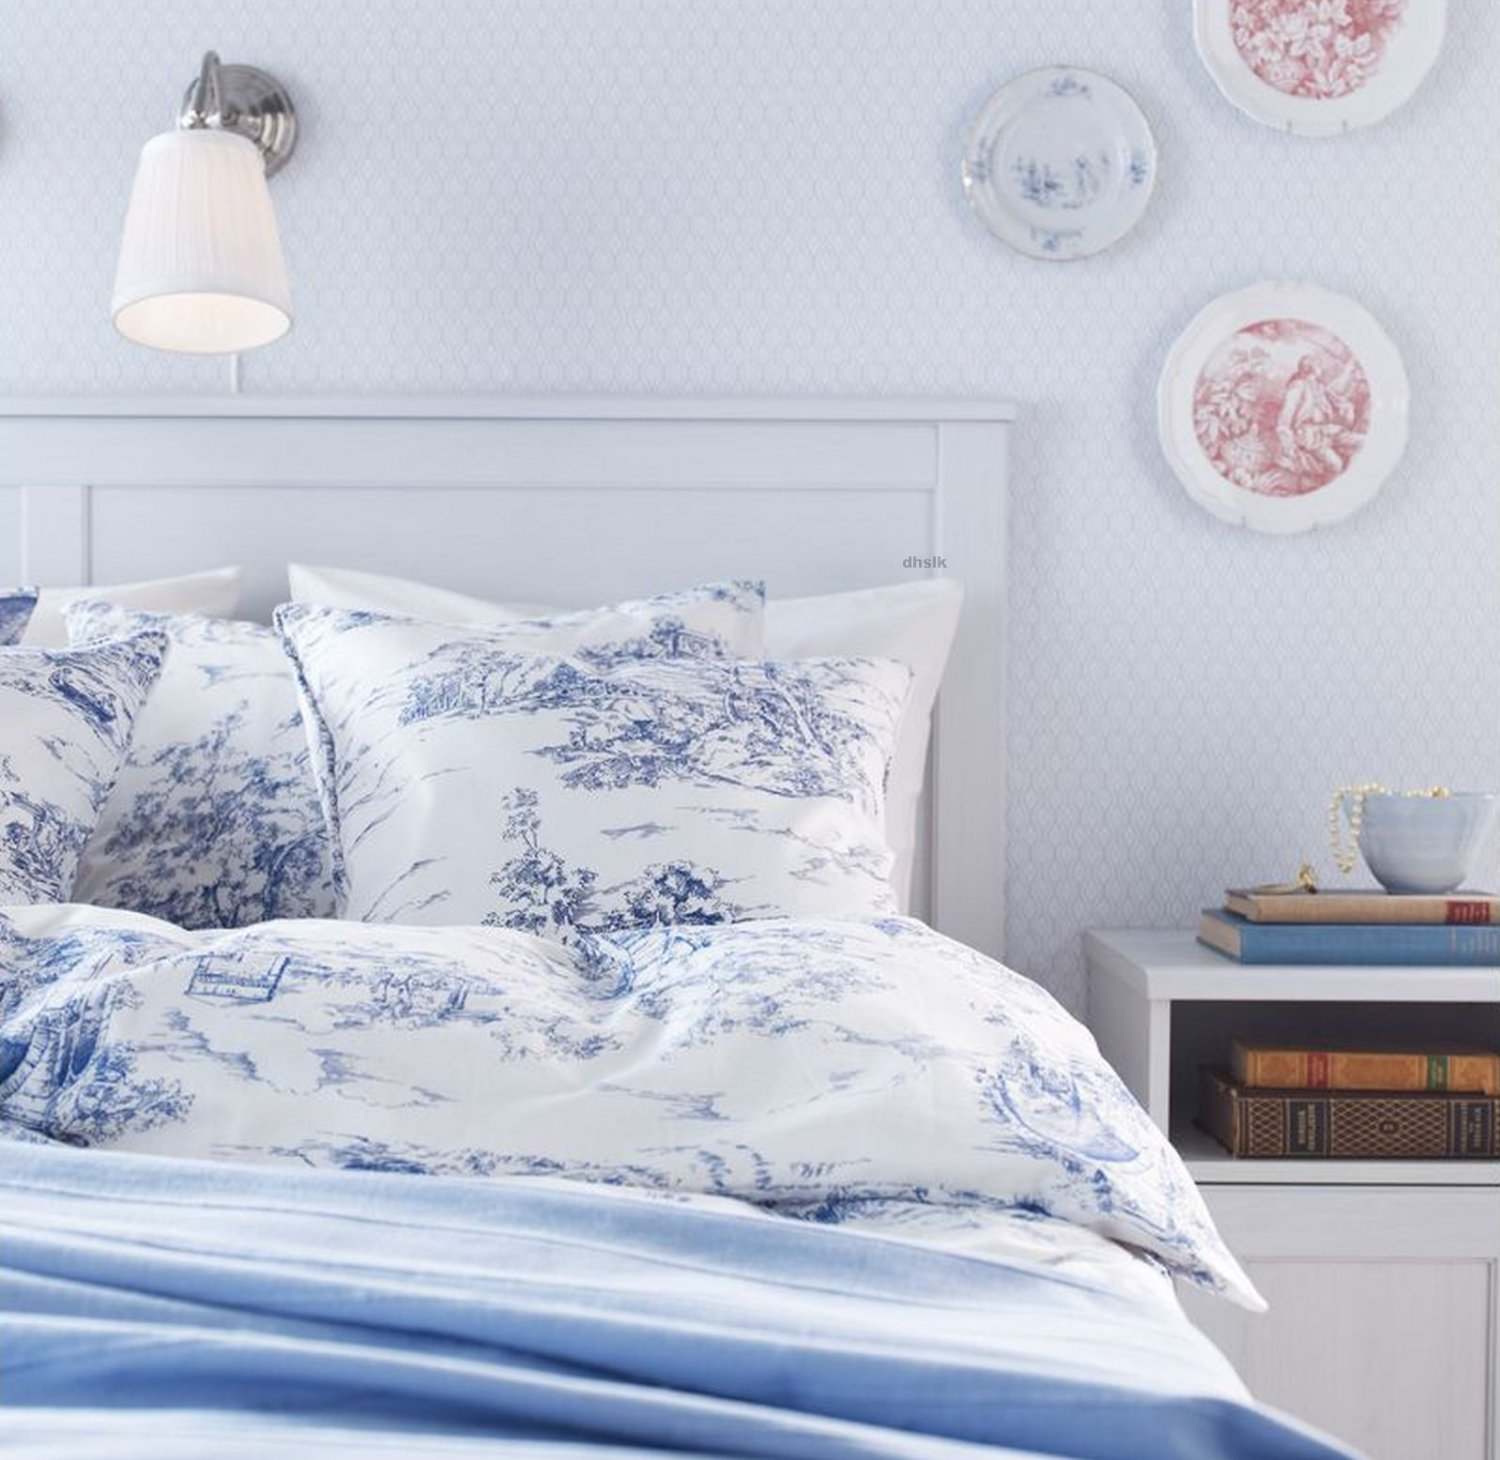 Ikea Emmie Land Queen Duvet Cover Pillowcases Set Blue